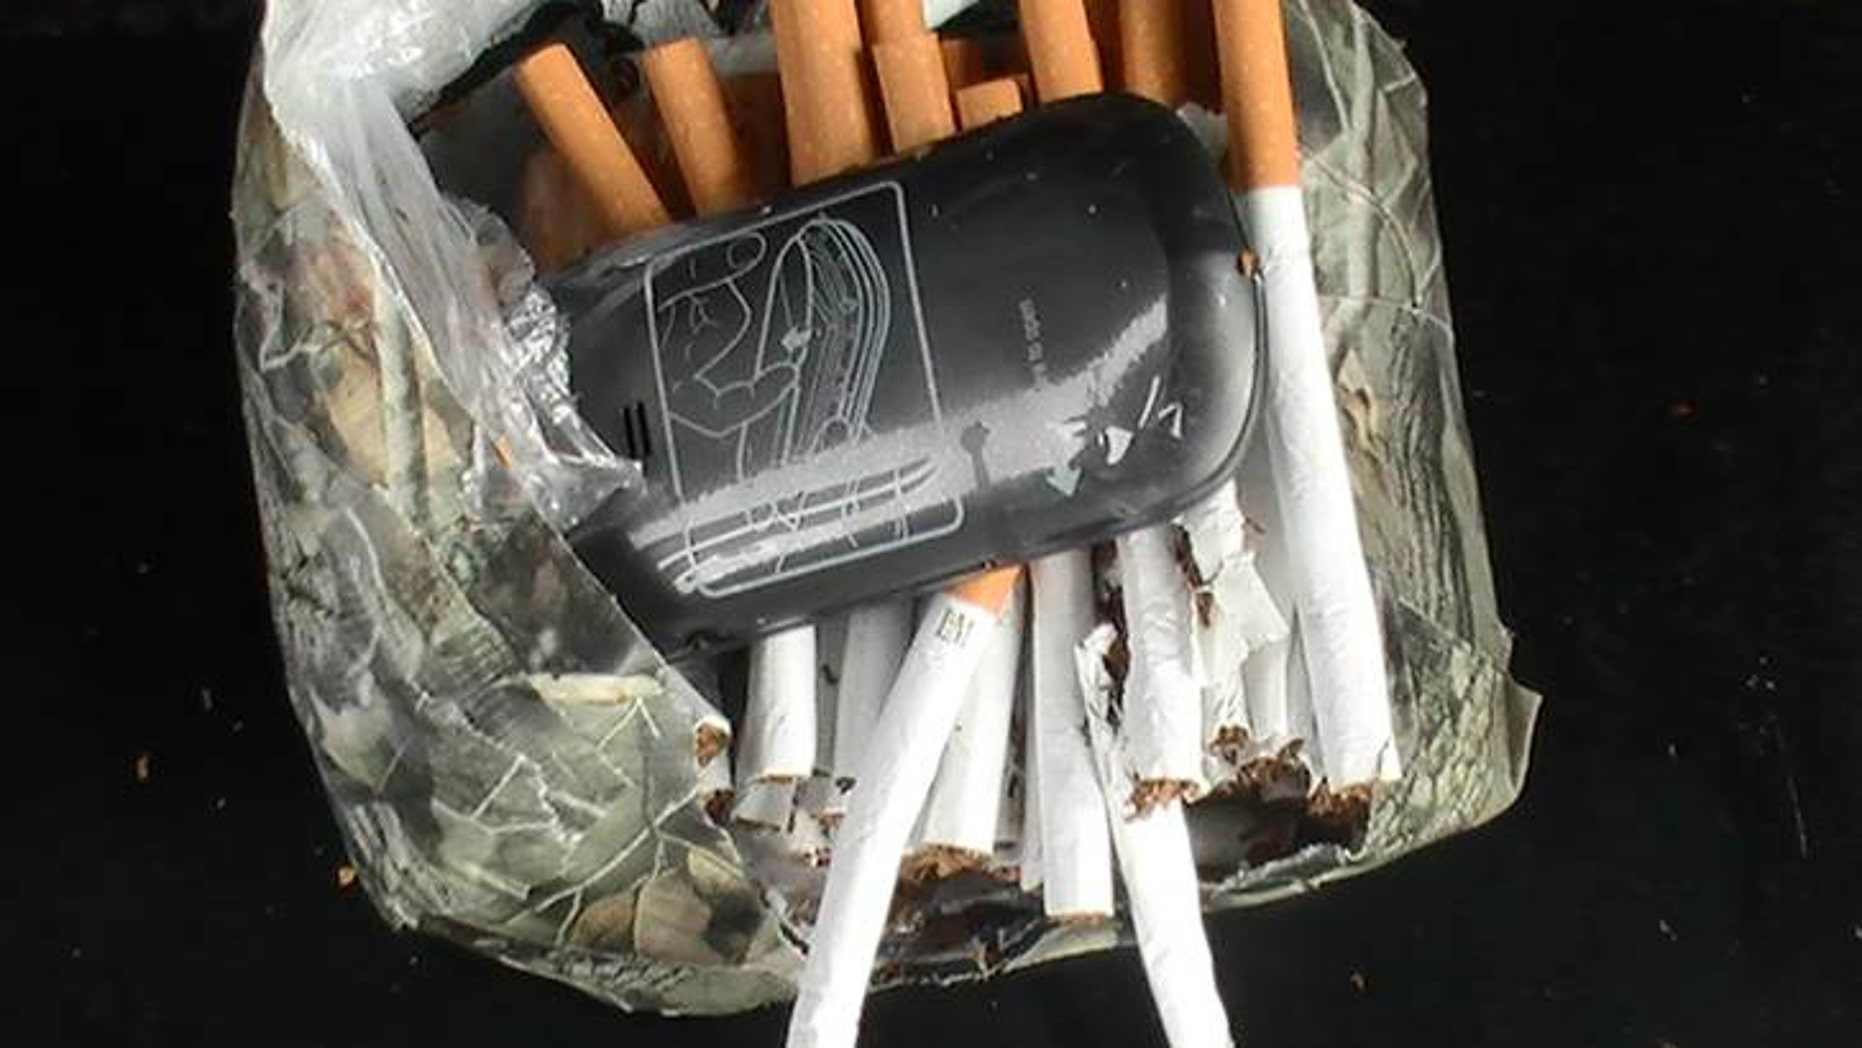 This undated photo mprovided by the Florida Department of Corrections shows a cellphone and cigarettes that were found inside a camouflage package, January 25, 2014, near an undisclosed Florida state prison. Prison officials in Florida and nationwide are fighting a different type of contraband being smuggled to inmates: cellphones. They're being hidden in babies' diapers, Ramen Noodle Soup packages, footballs, soda cans and body cavities.Two murderers used cellphones to plan their escape from a Florida prison last year where the state confiscated 11 cellphones per day in its prisons. (AP Photo/Florida Department of Corrections)